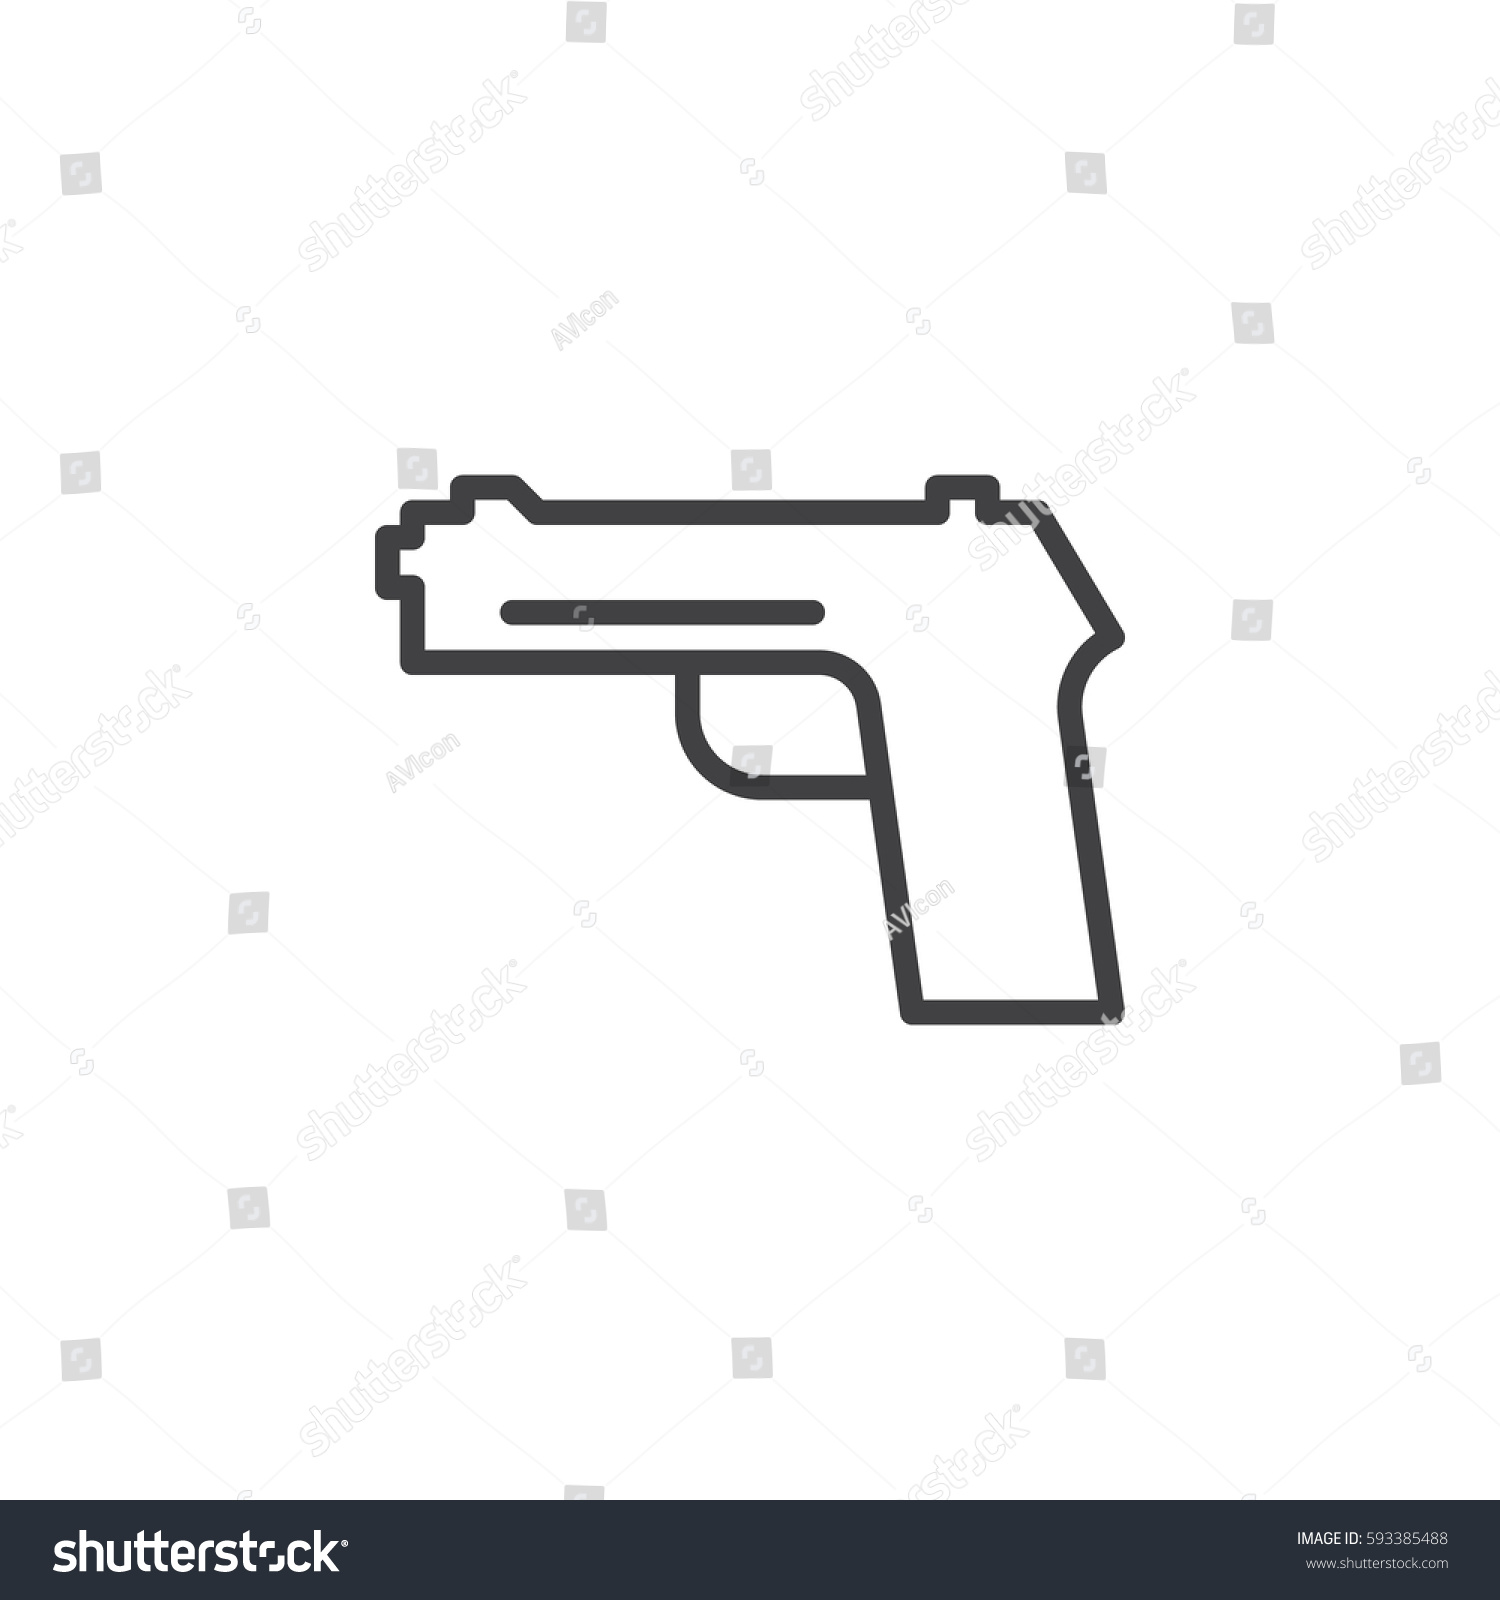 Gun pistol handgun line icon outline stock vector 593385488 gun pistol handgun line icon outline vector sign linear style pictogram isolated biocorpaavc Images